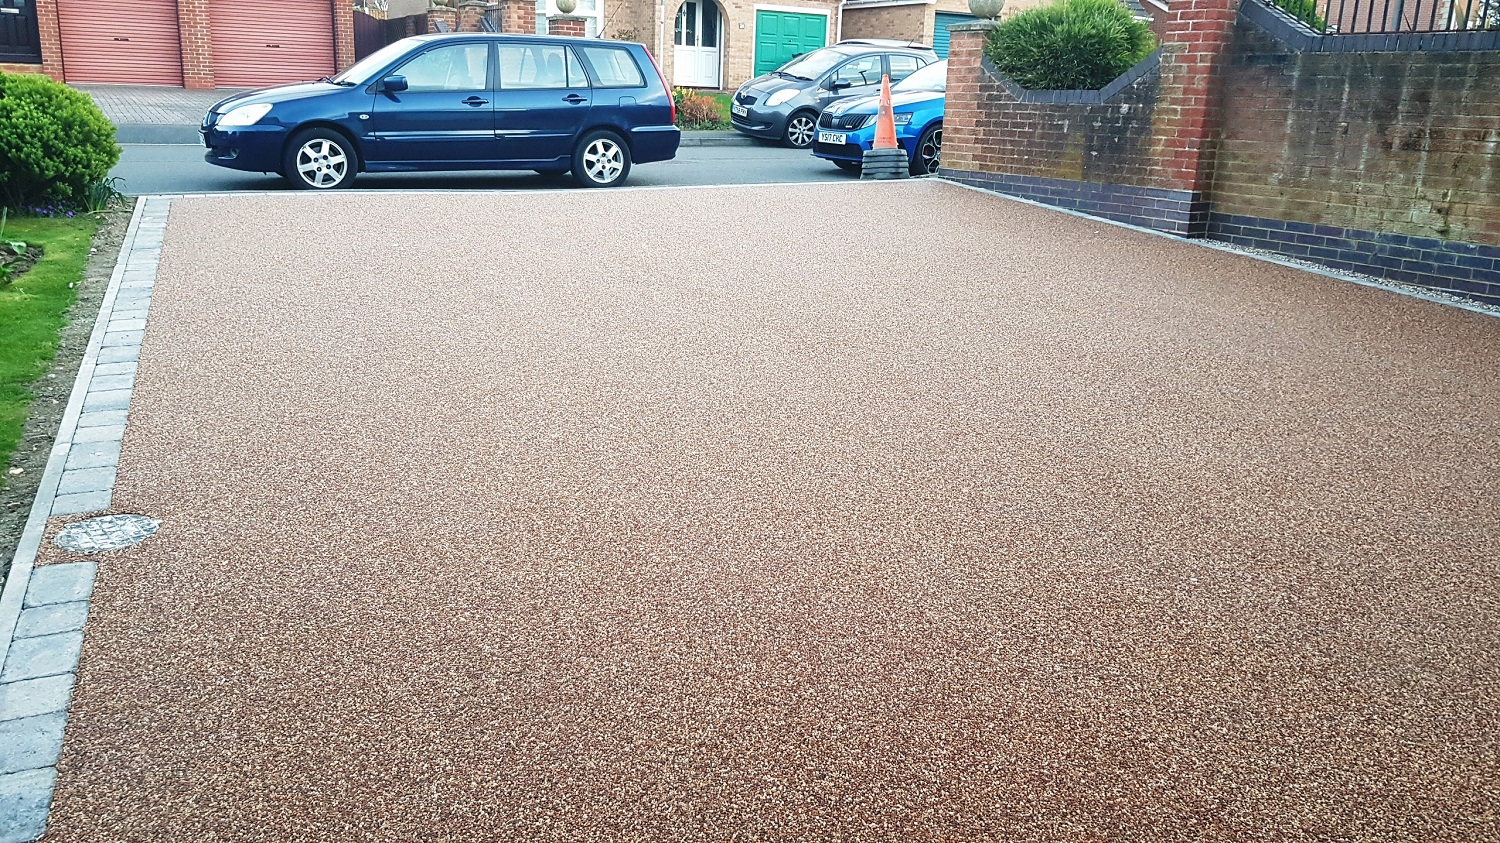 R7 - Chilli Chocolate Mix (1)  Resin Bound Driveway Surfacing at Walton in Chesterfield with Granite